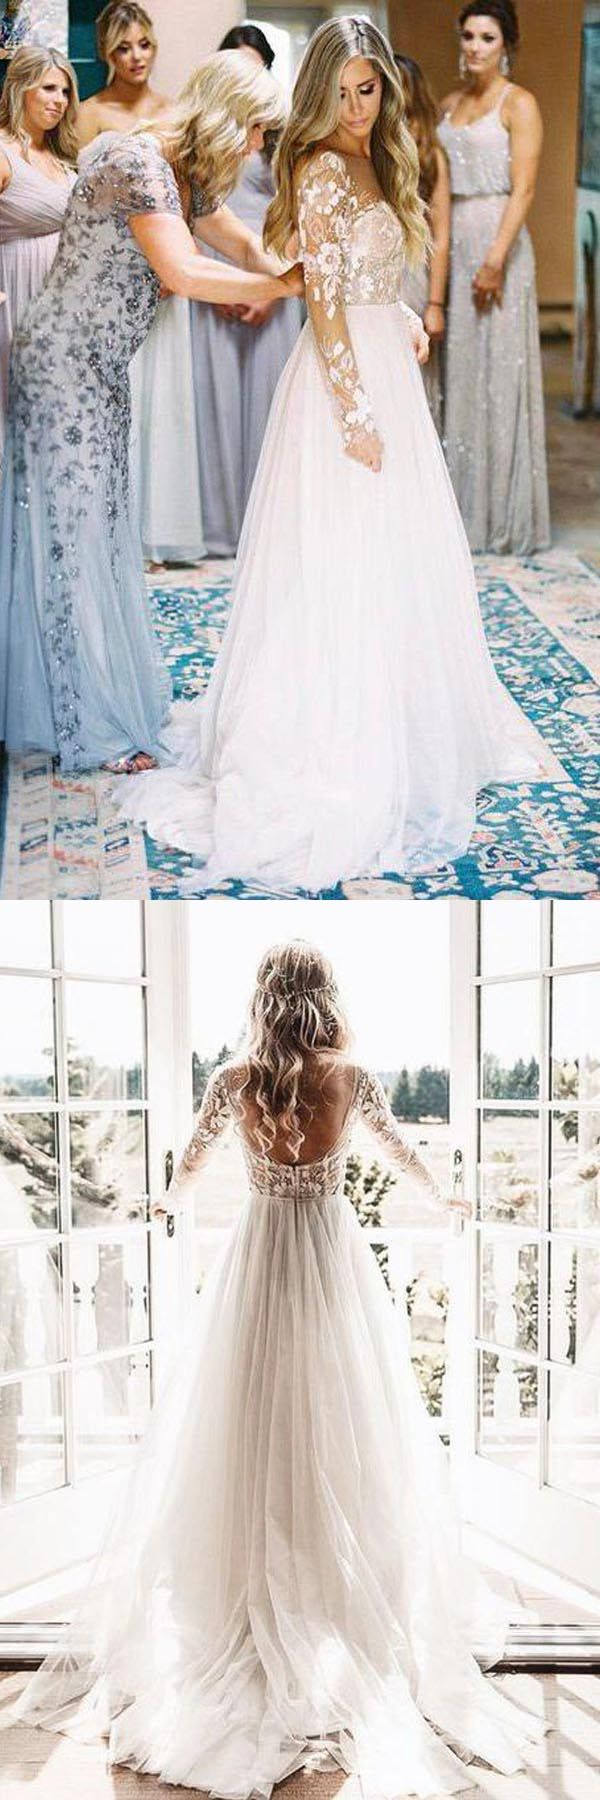 Wedding decorations using tulle october 2018 Long Sleeve Ivory Tulle See Through Backless Wedding Dresses WD